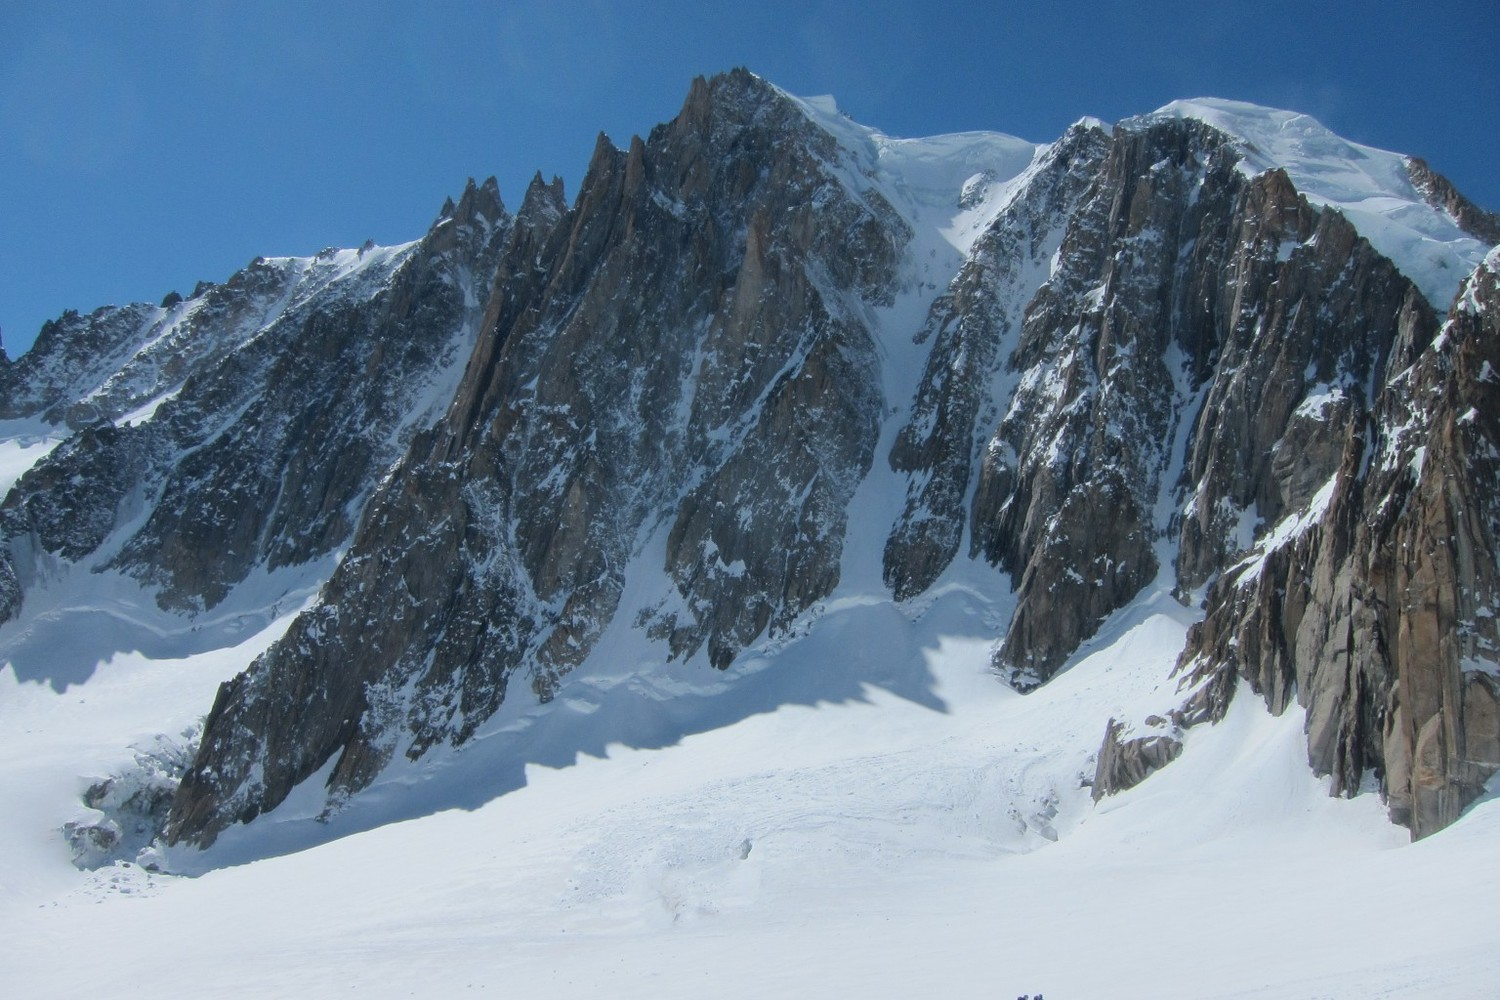 Tacul from vallé Blanche